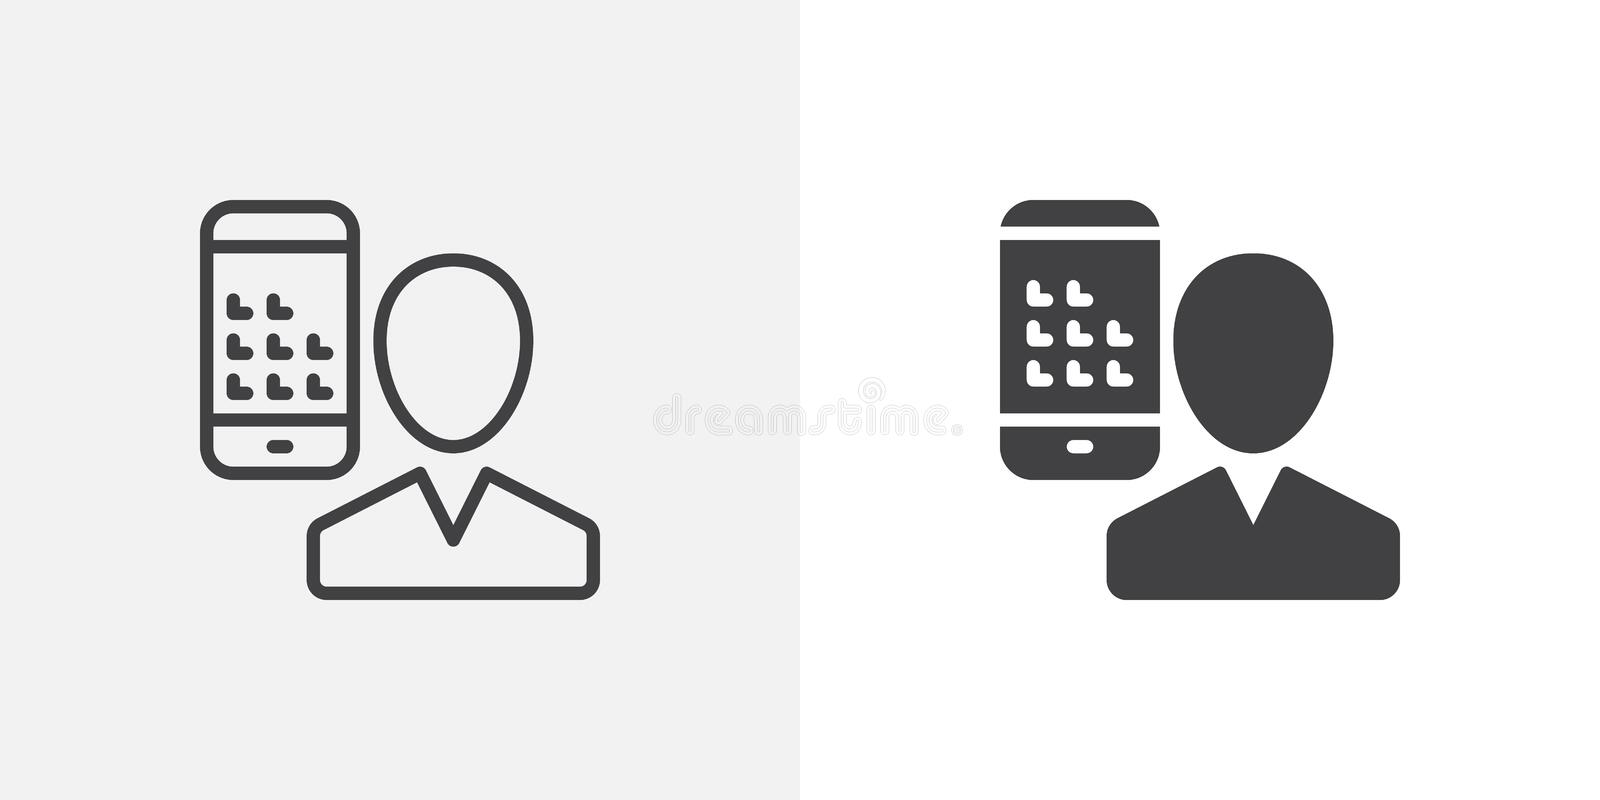 User and mobile phone icon royalty free illustration